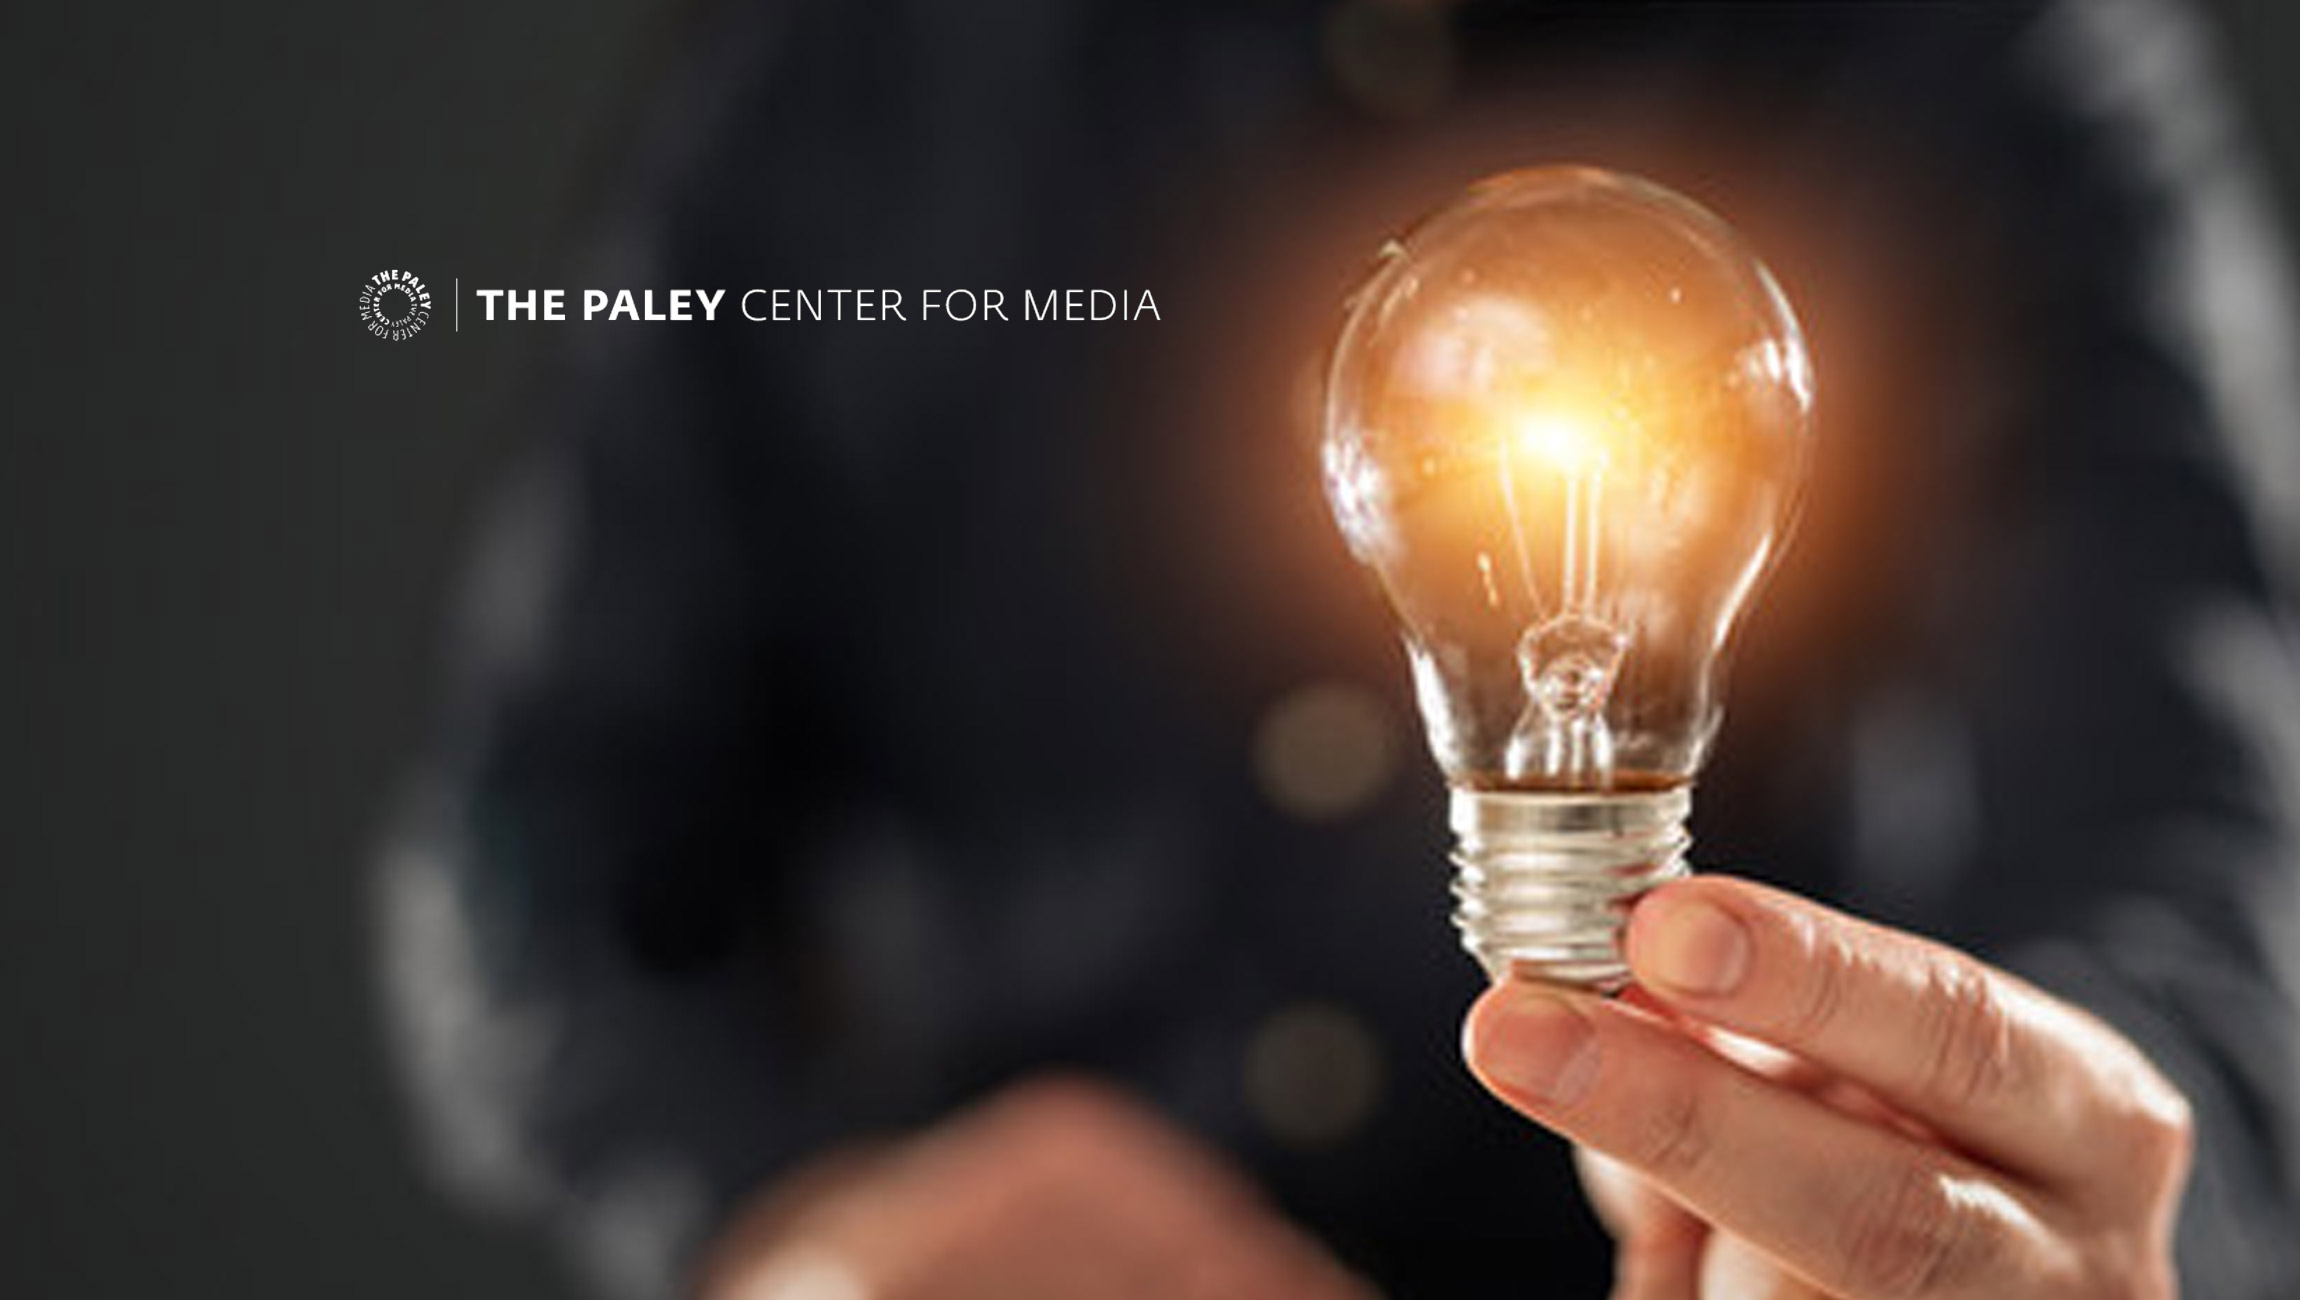 Paley Center for Media Announces New PaleyImpact Event: Media's Role in Preparing for Life After COVID-19 6